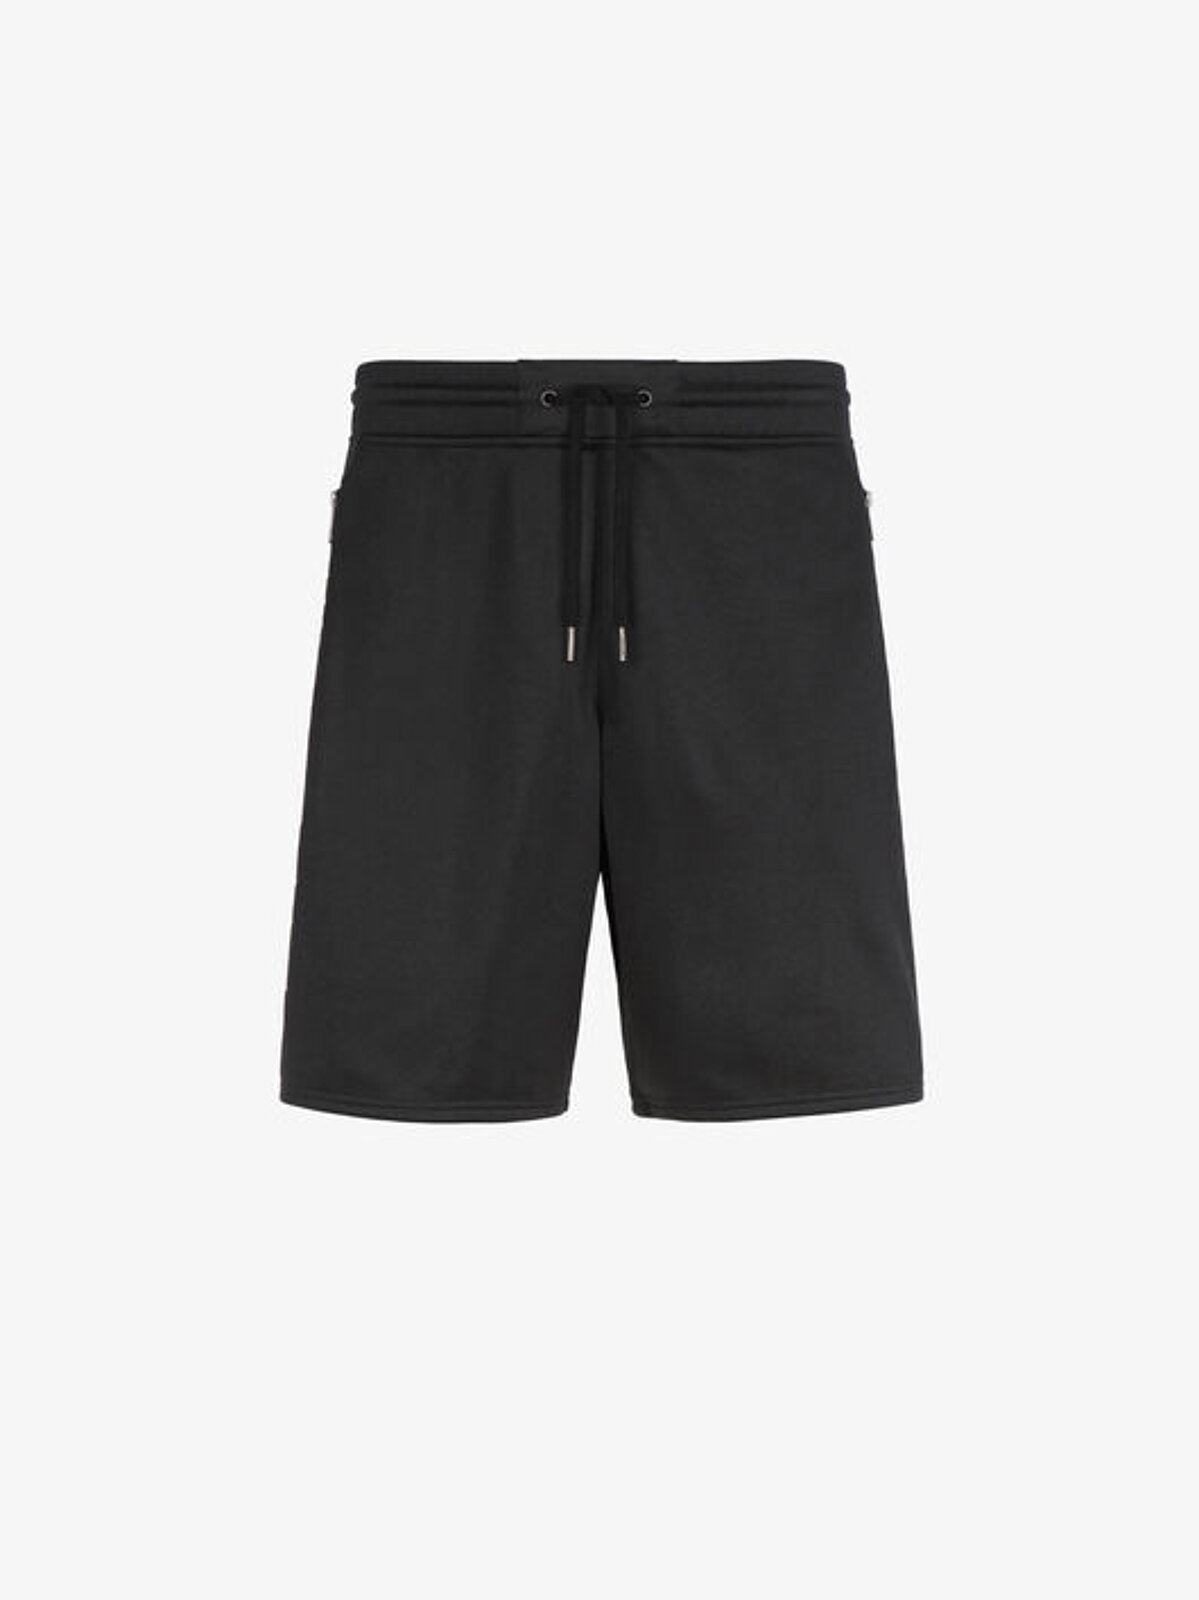 Bermuda shorts with GIVENCHY stripes - Givenchy